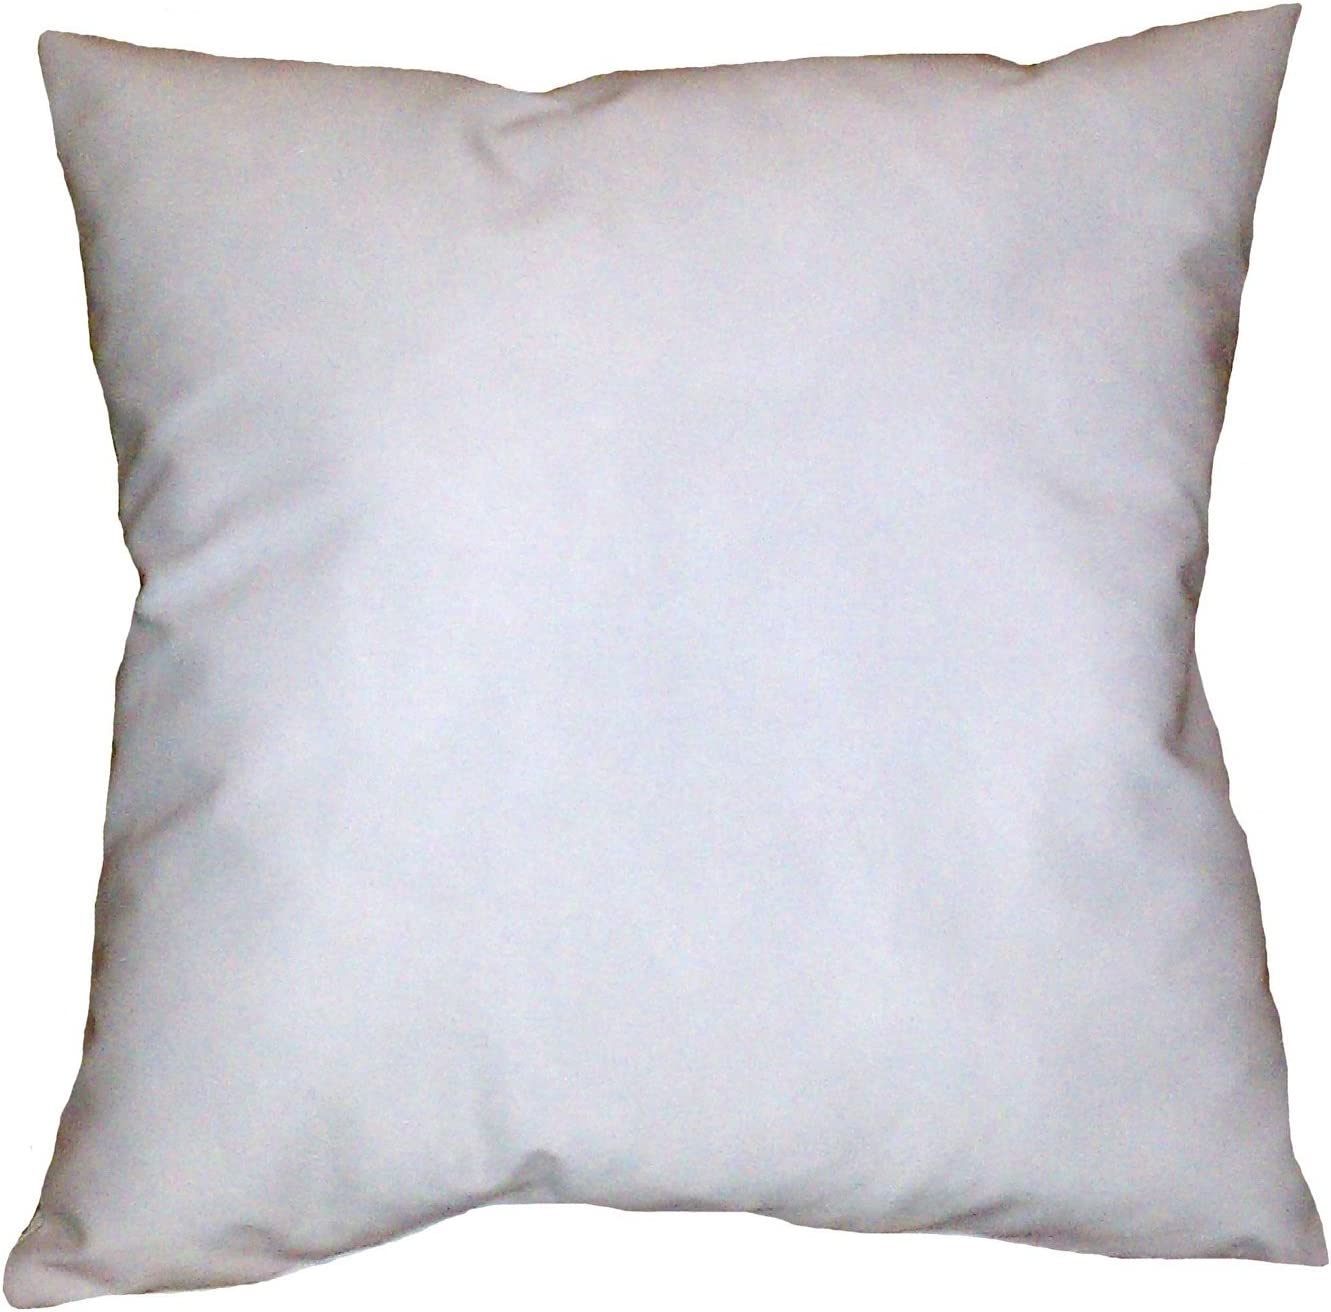 Reynosohomedecor 9x9 Square Pillow Insert Form Home Kitchen